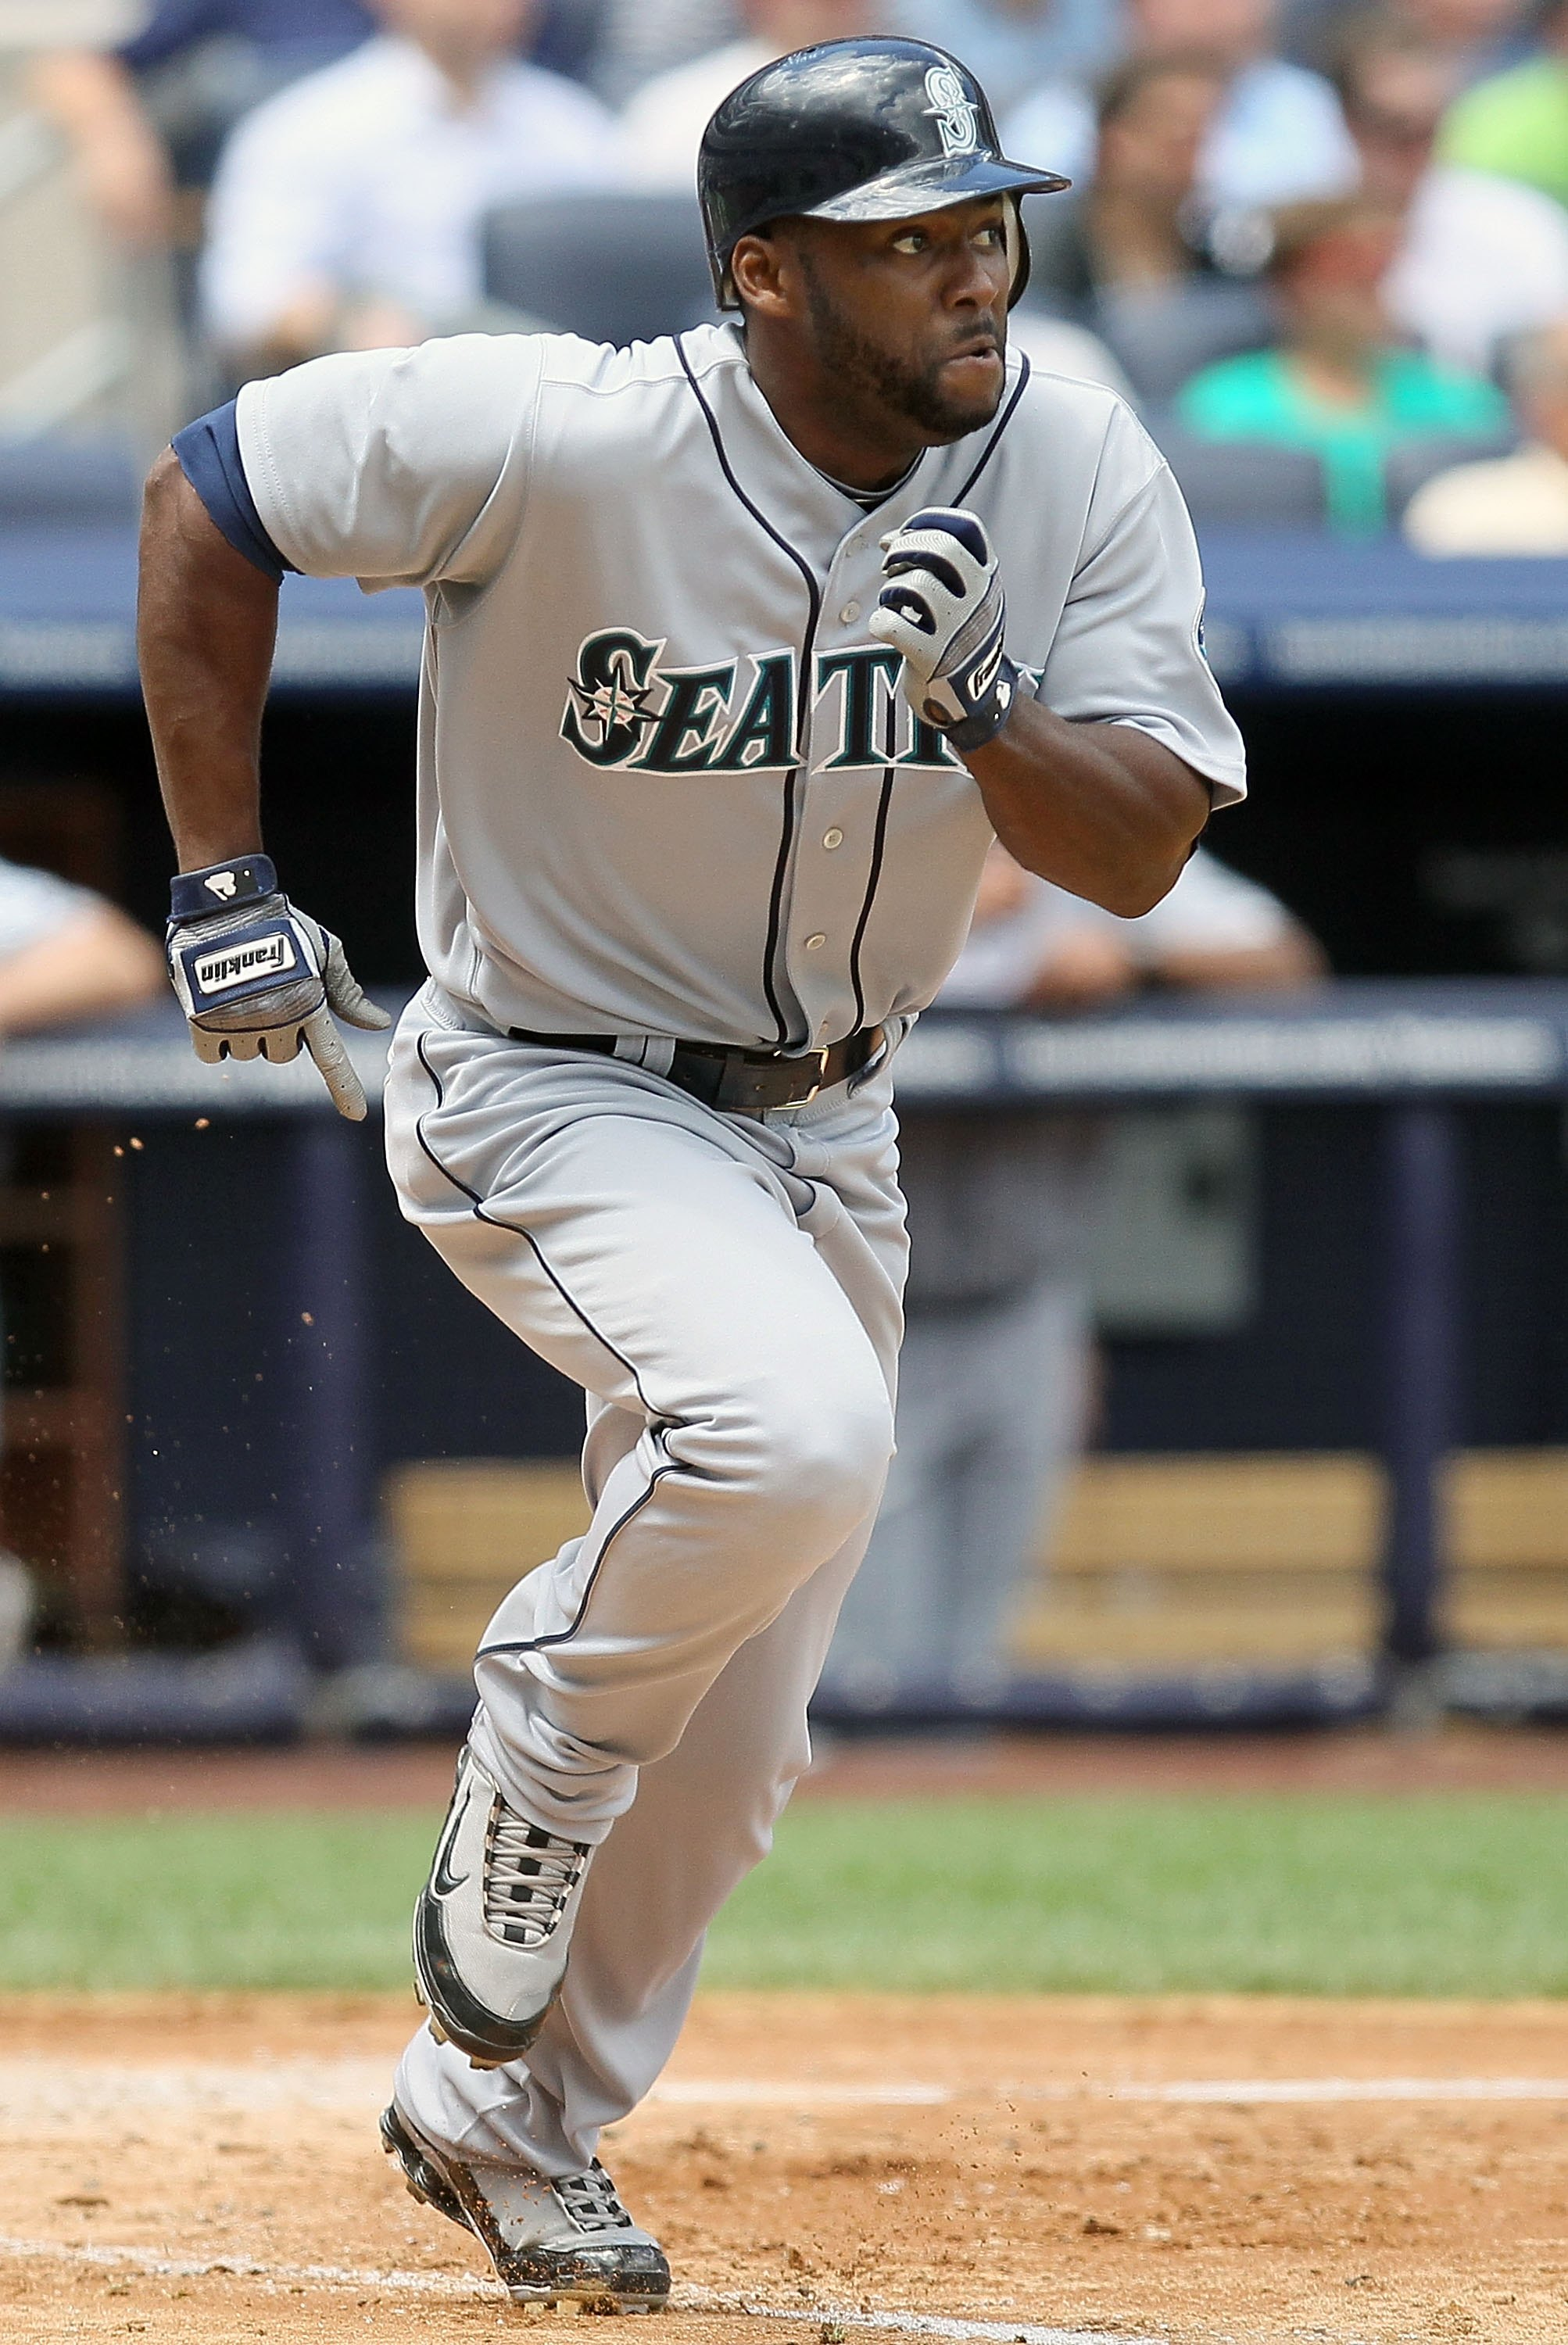 NEW YORK - JULY 01:  Milton Bradley #15 of the Seattle Mariners runs against the New York Yankees on July 1, 2010 at Yankee Stadium in the Bronx borough of New York City. The Yankees defeated the Mariners 4-2.  (Photo by Jim McIsaac/Getty Images)